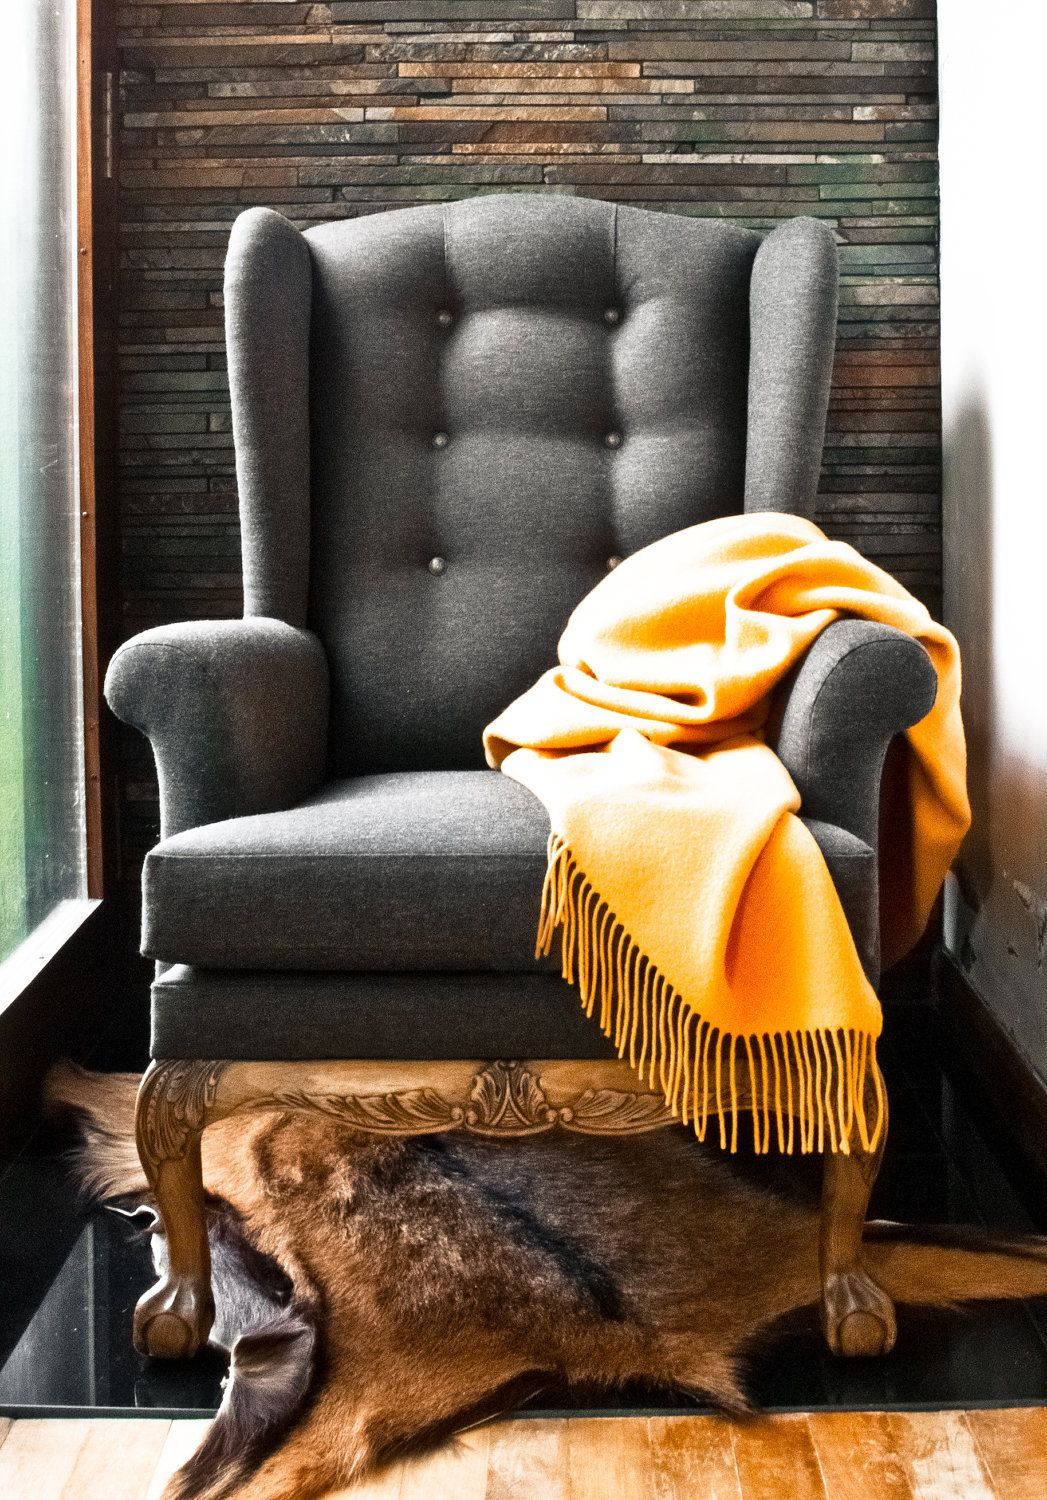 Wing Chairs For Living Room Early 1900s Wingback Chair Via Etsy Furniture Pinterest